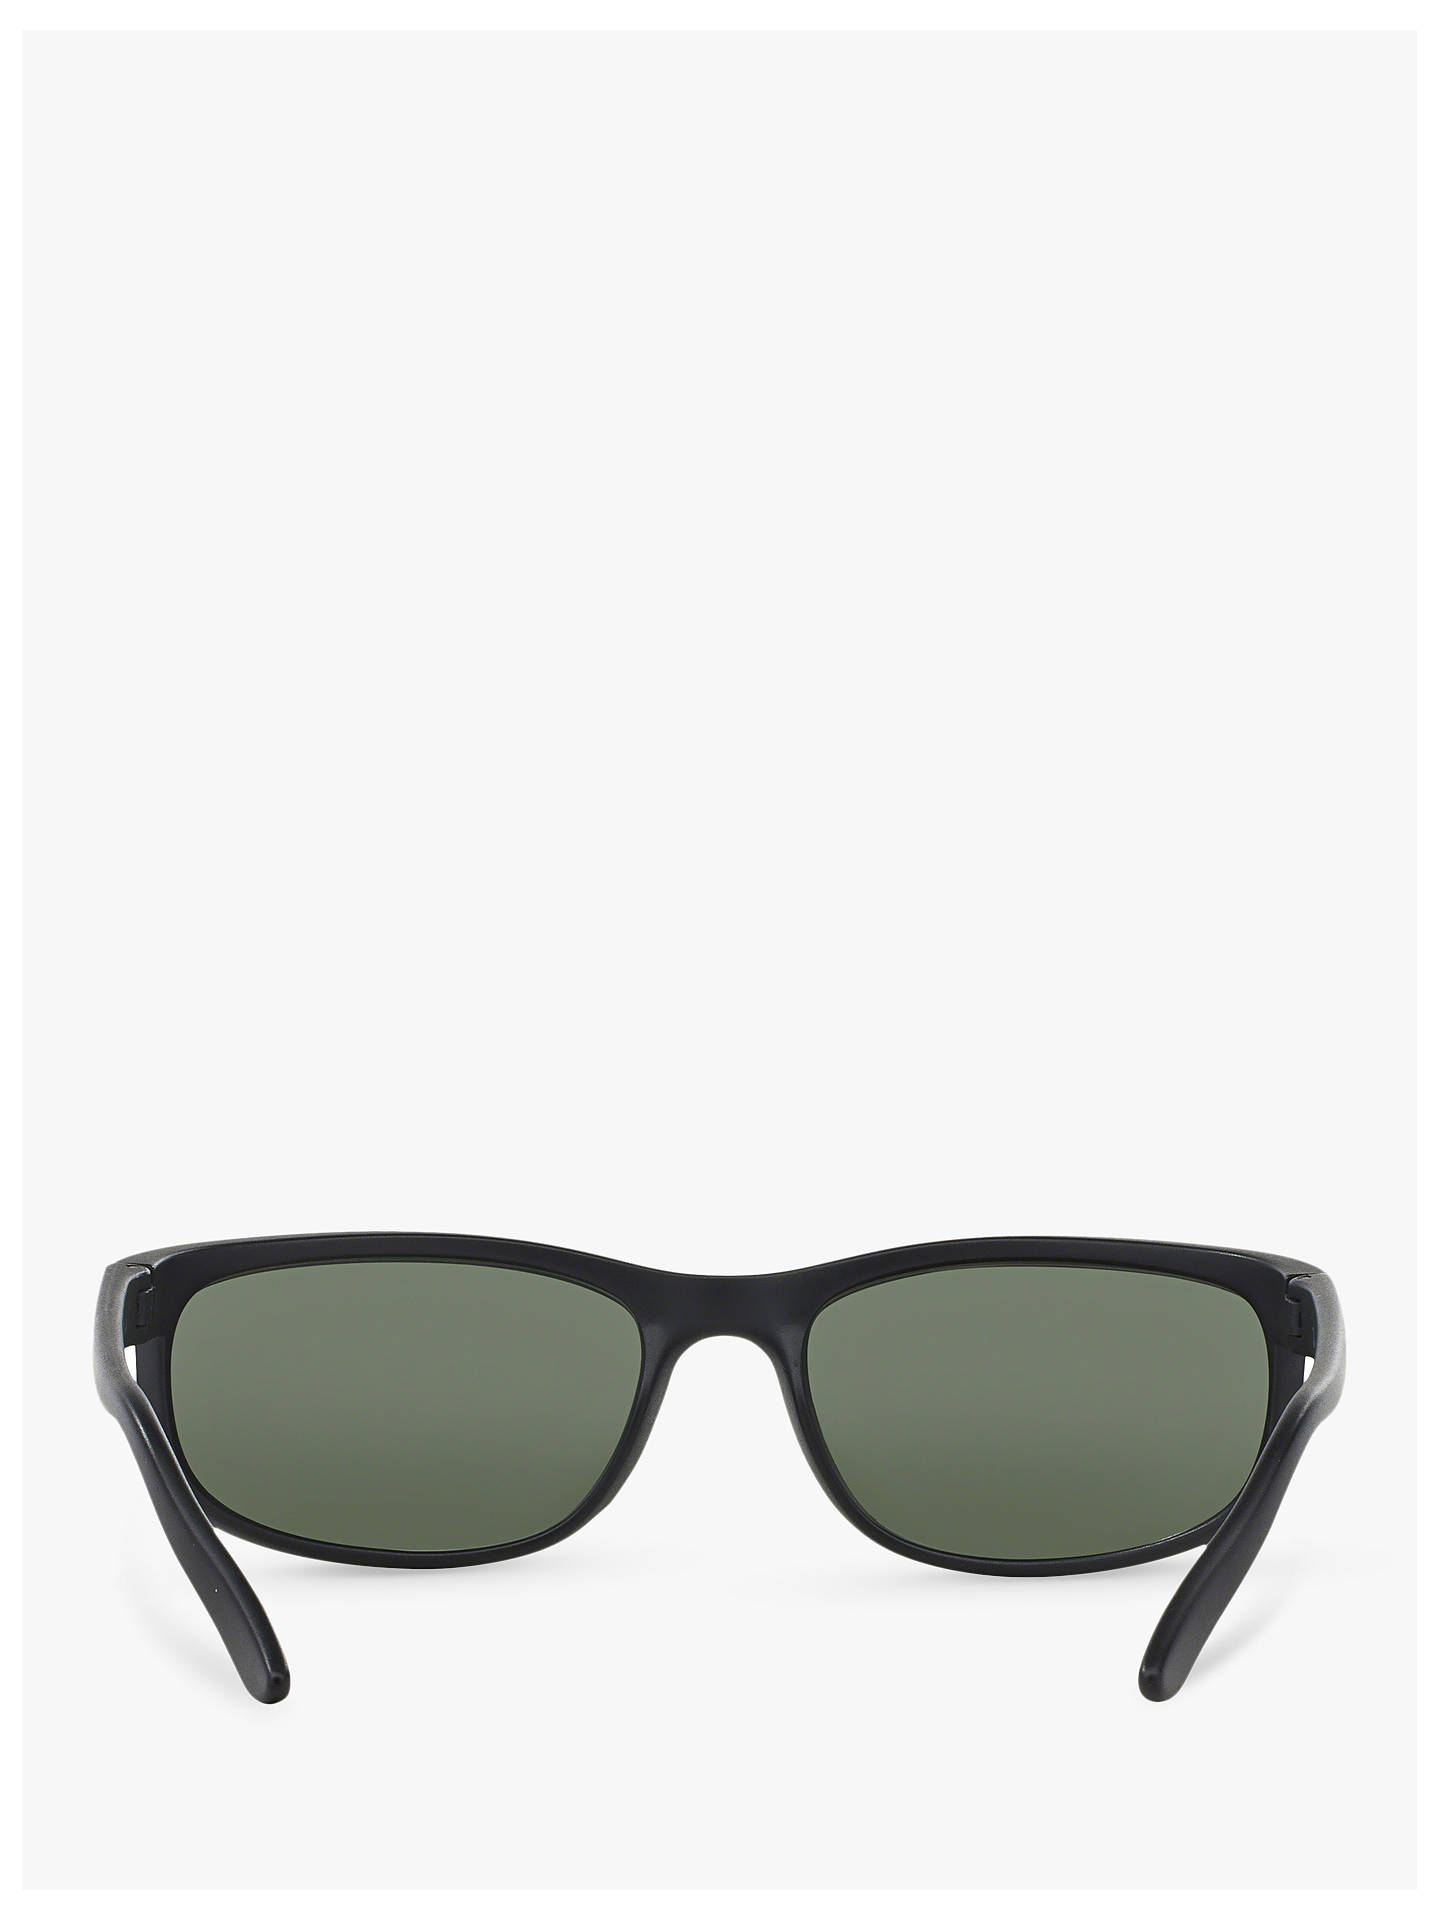 7f52f3665d ... Buy Ray-Ban RB2027 Men's Predator 2 Rectangular Sunglasses, Matte Black/ Green Online ...